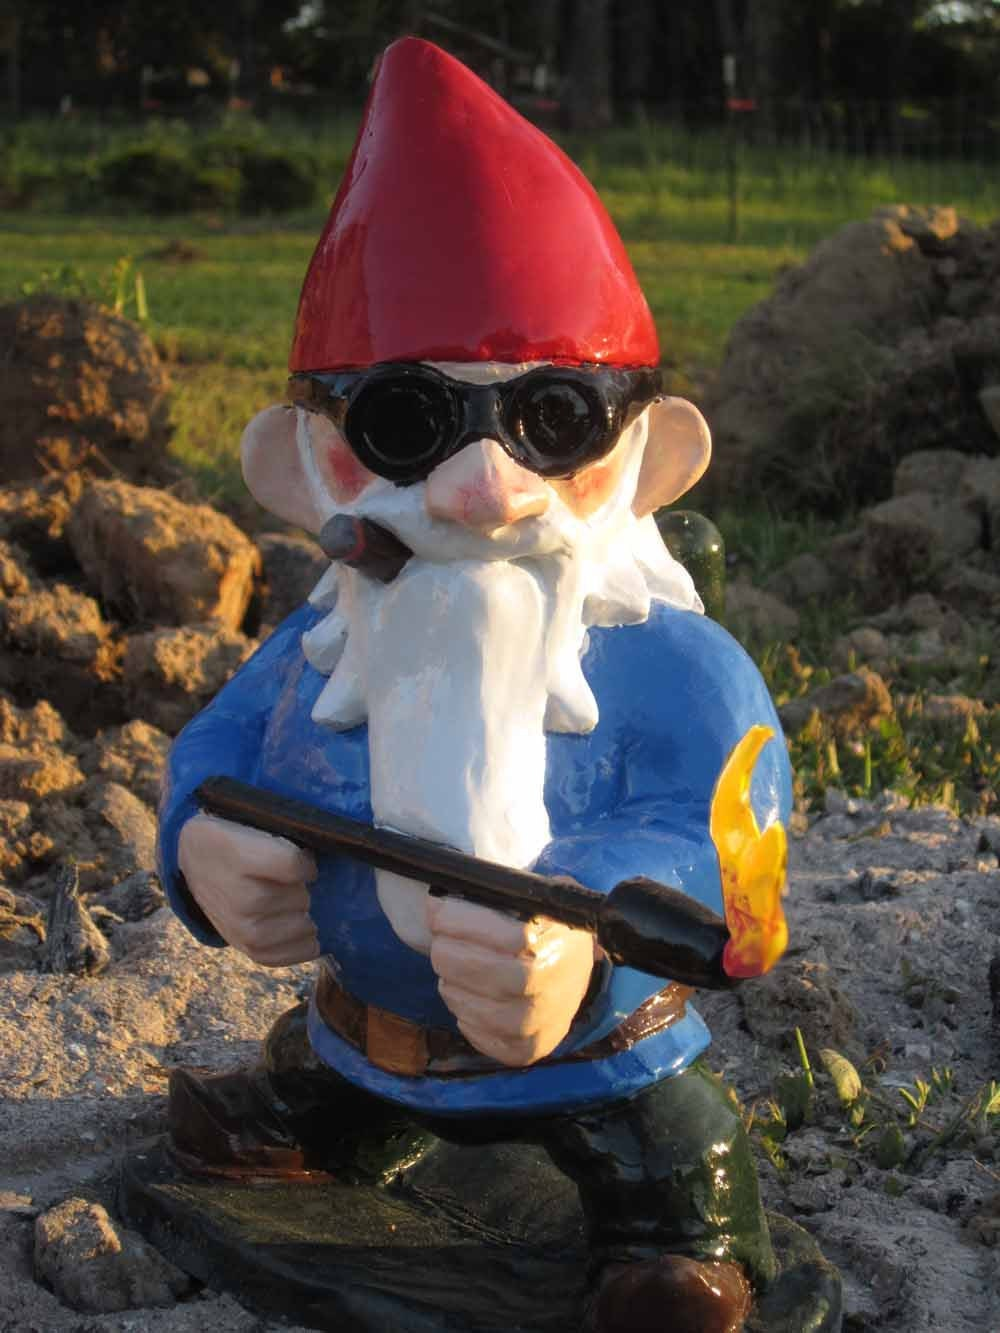 Gnome Garden: Combat Garden Gnome With Flamethrower